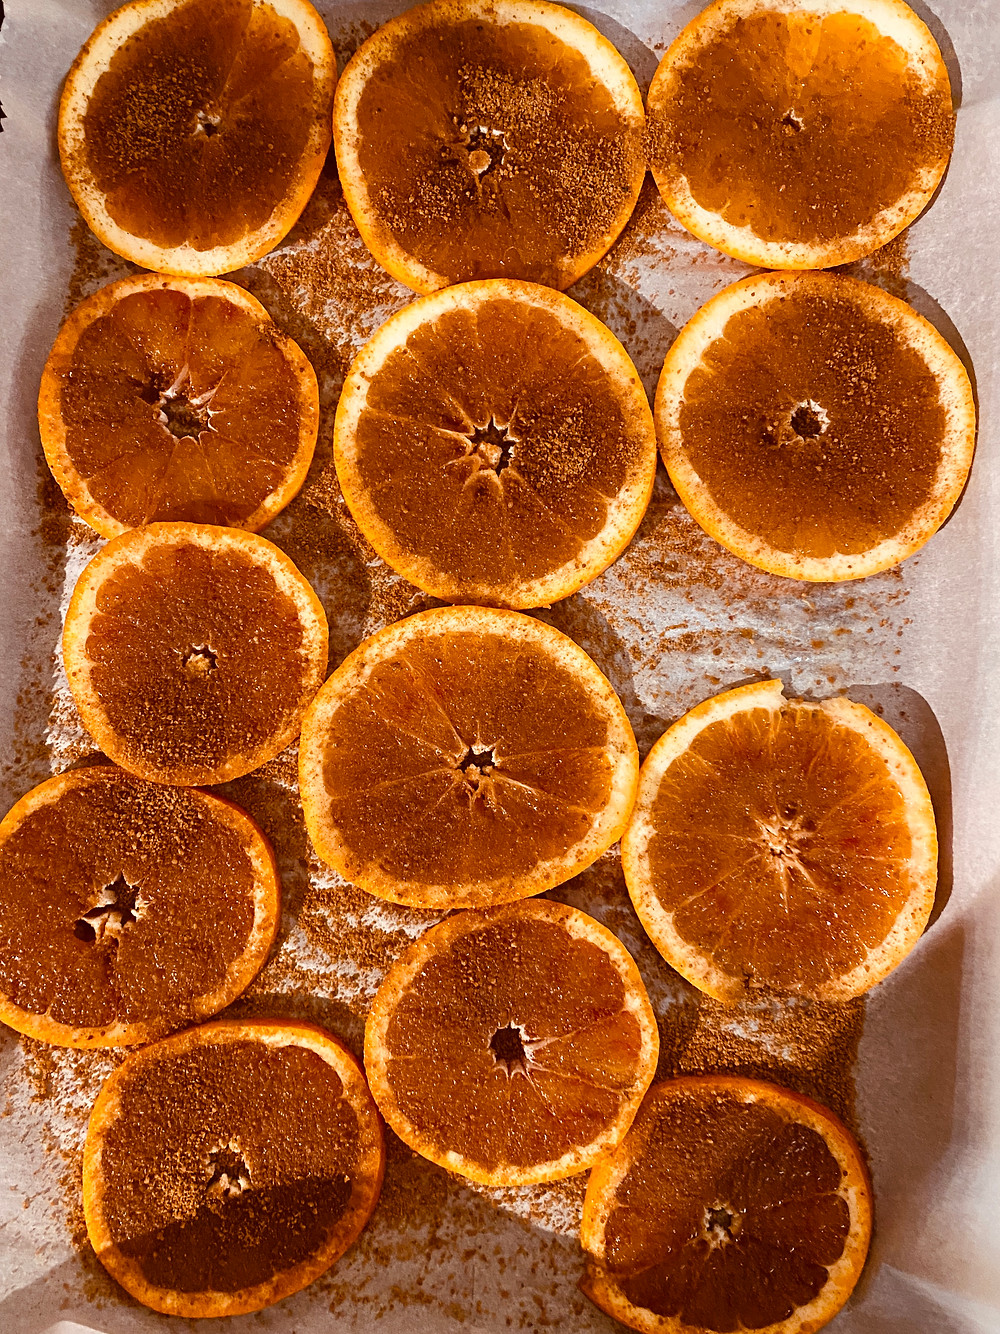 sicily-blood-oranges-dehydrated